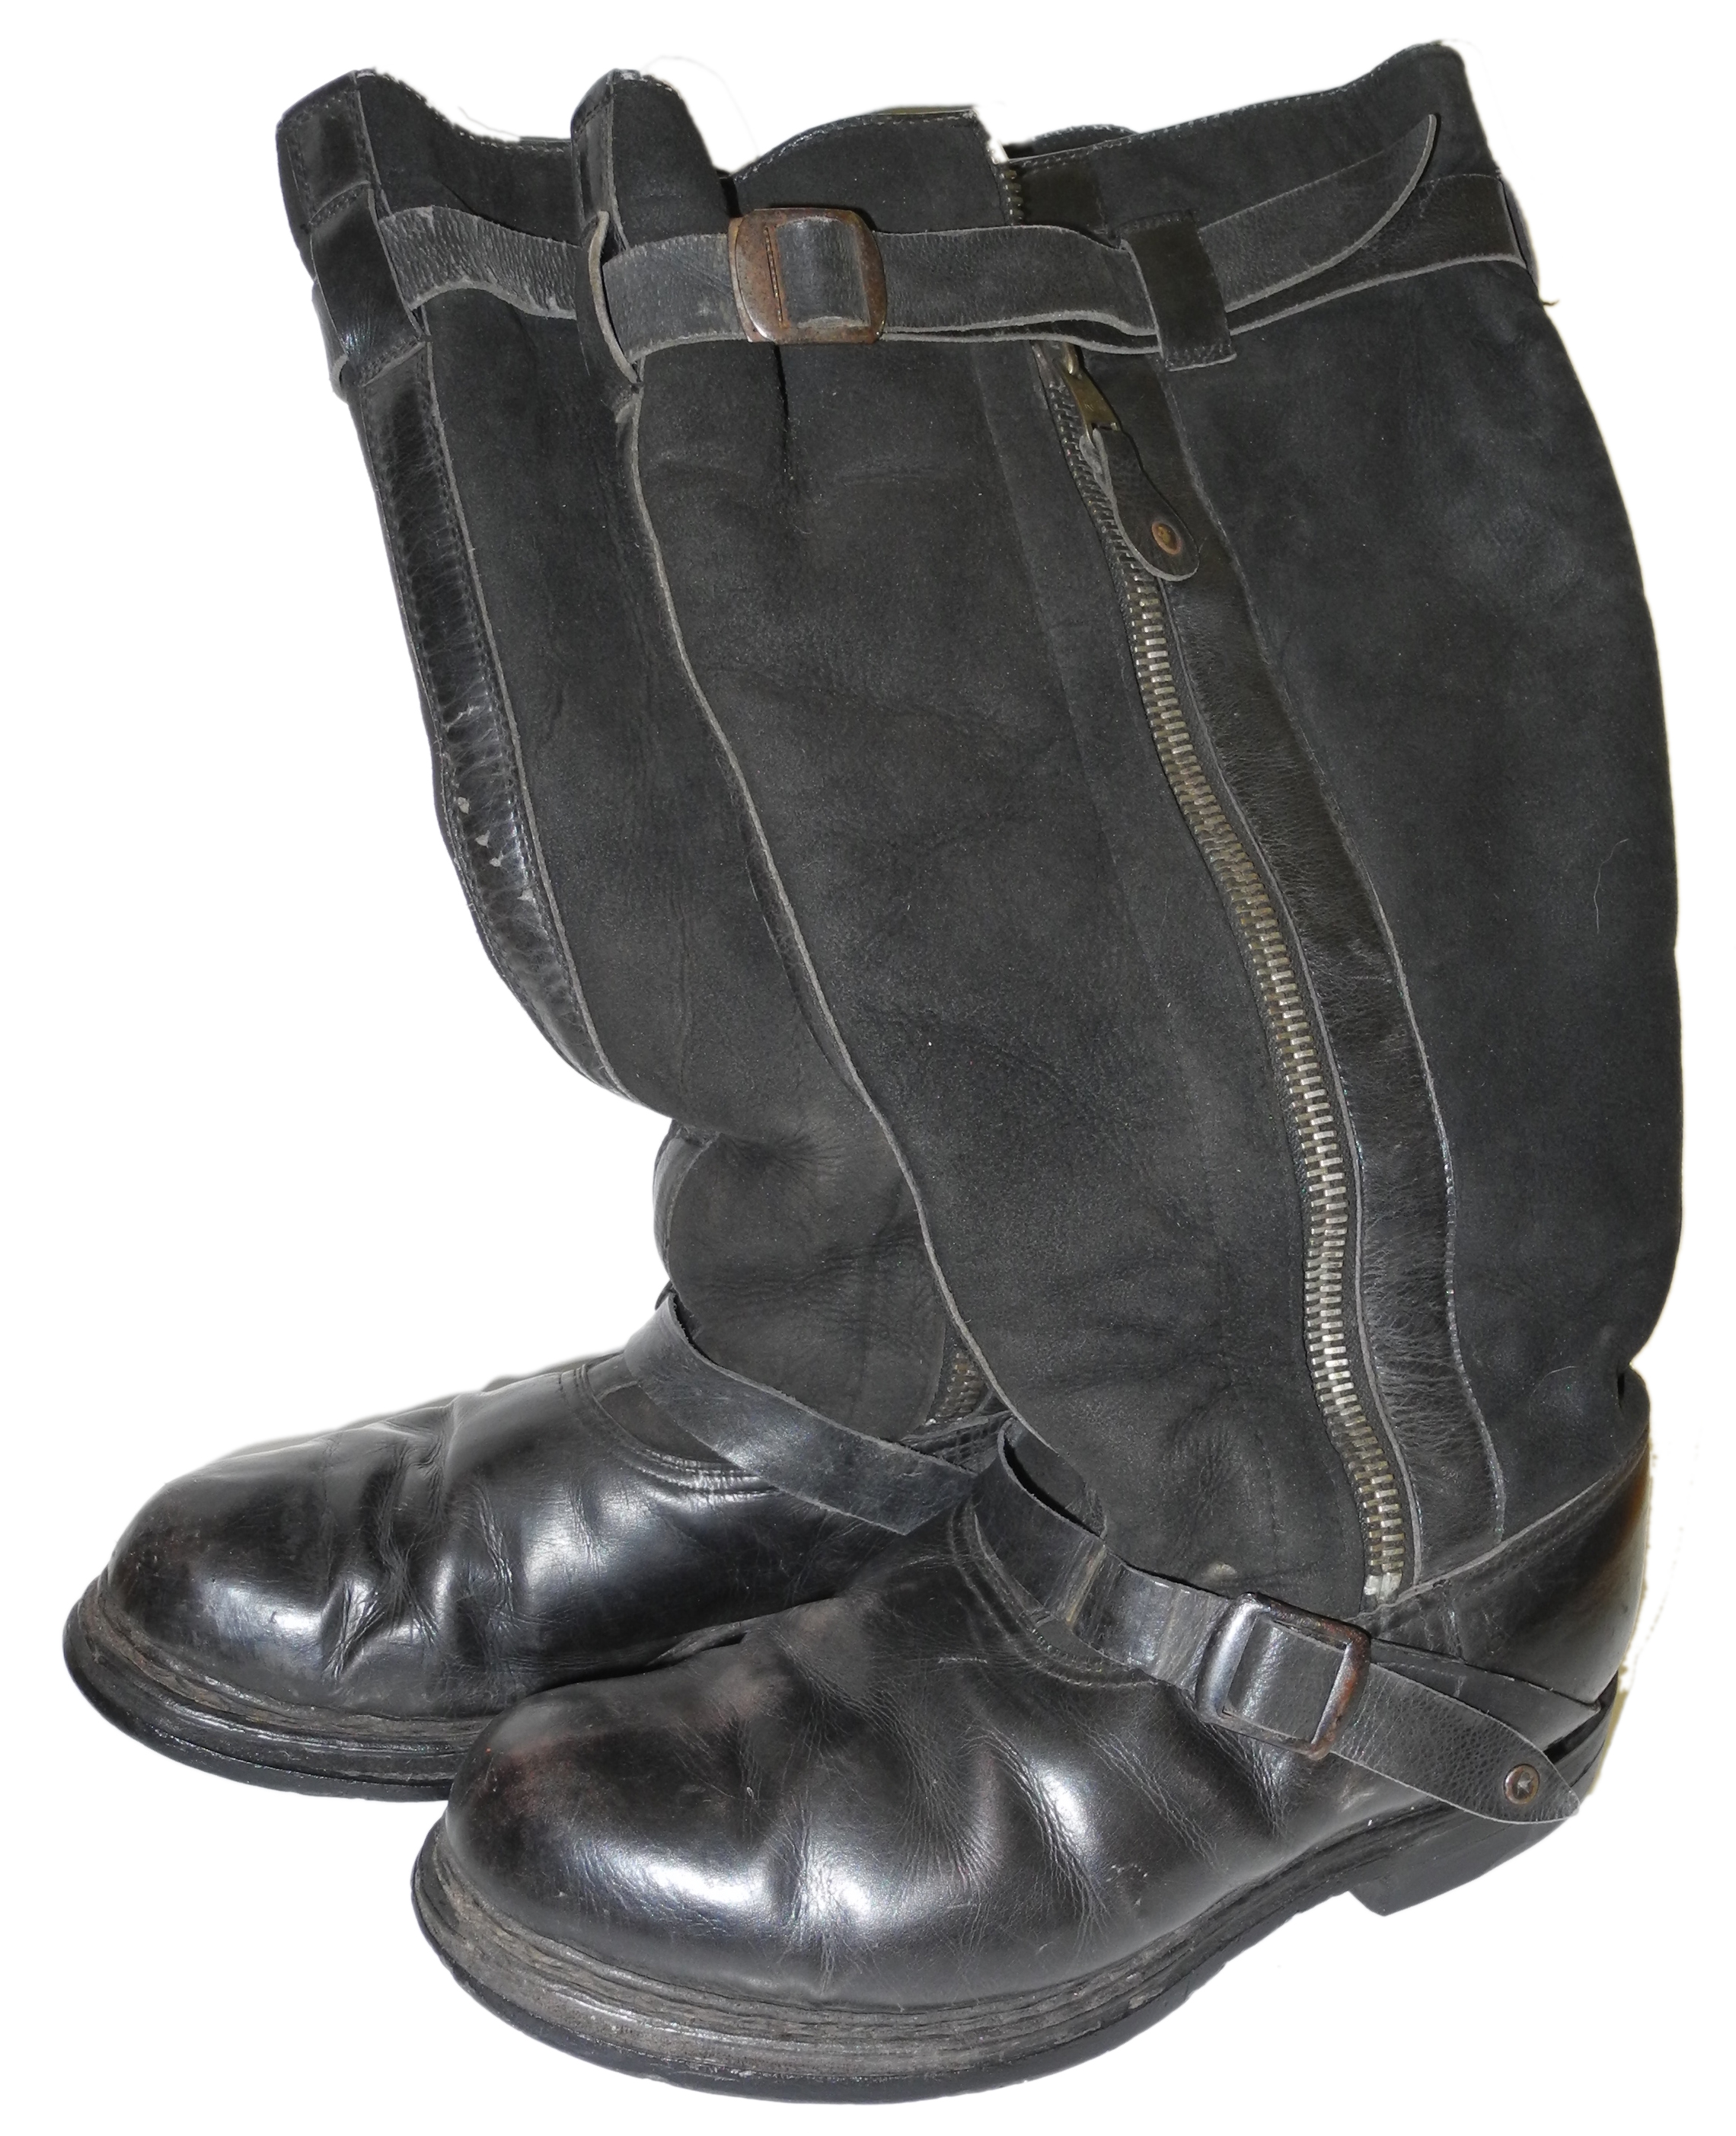 LW early double-zip flying boots